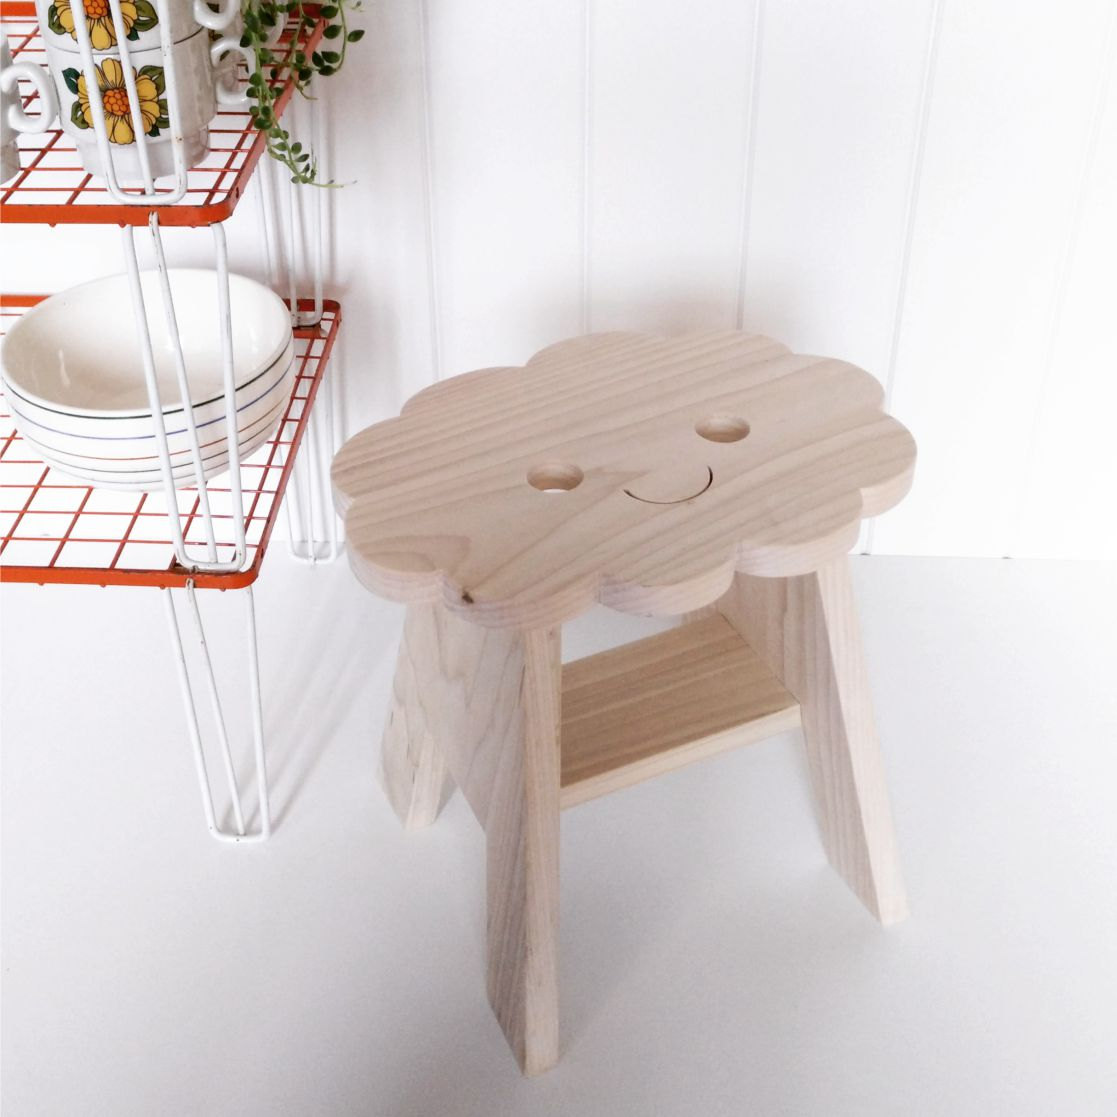 5 stool chair